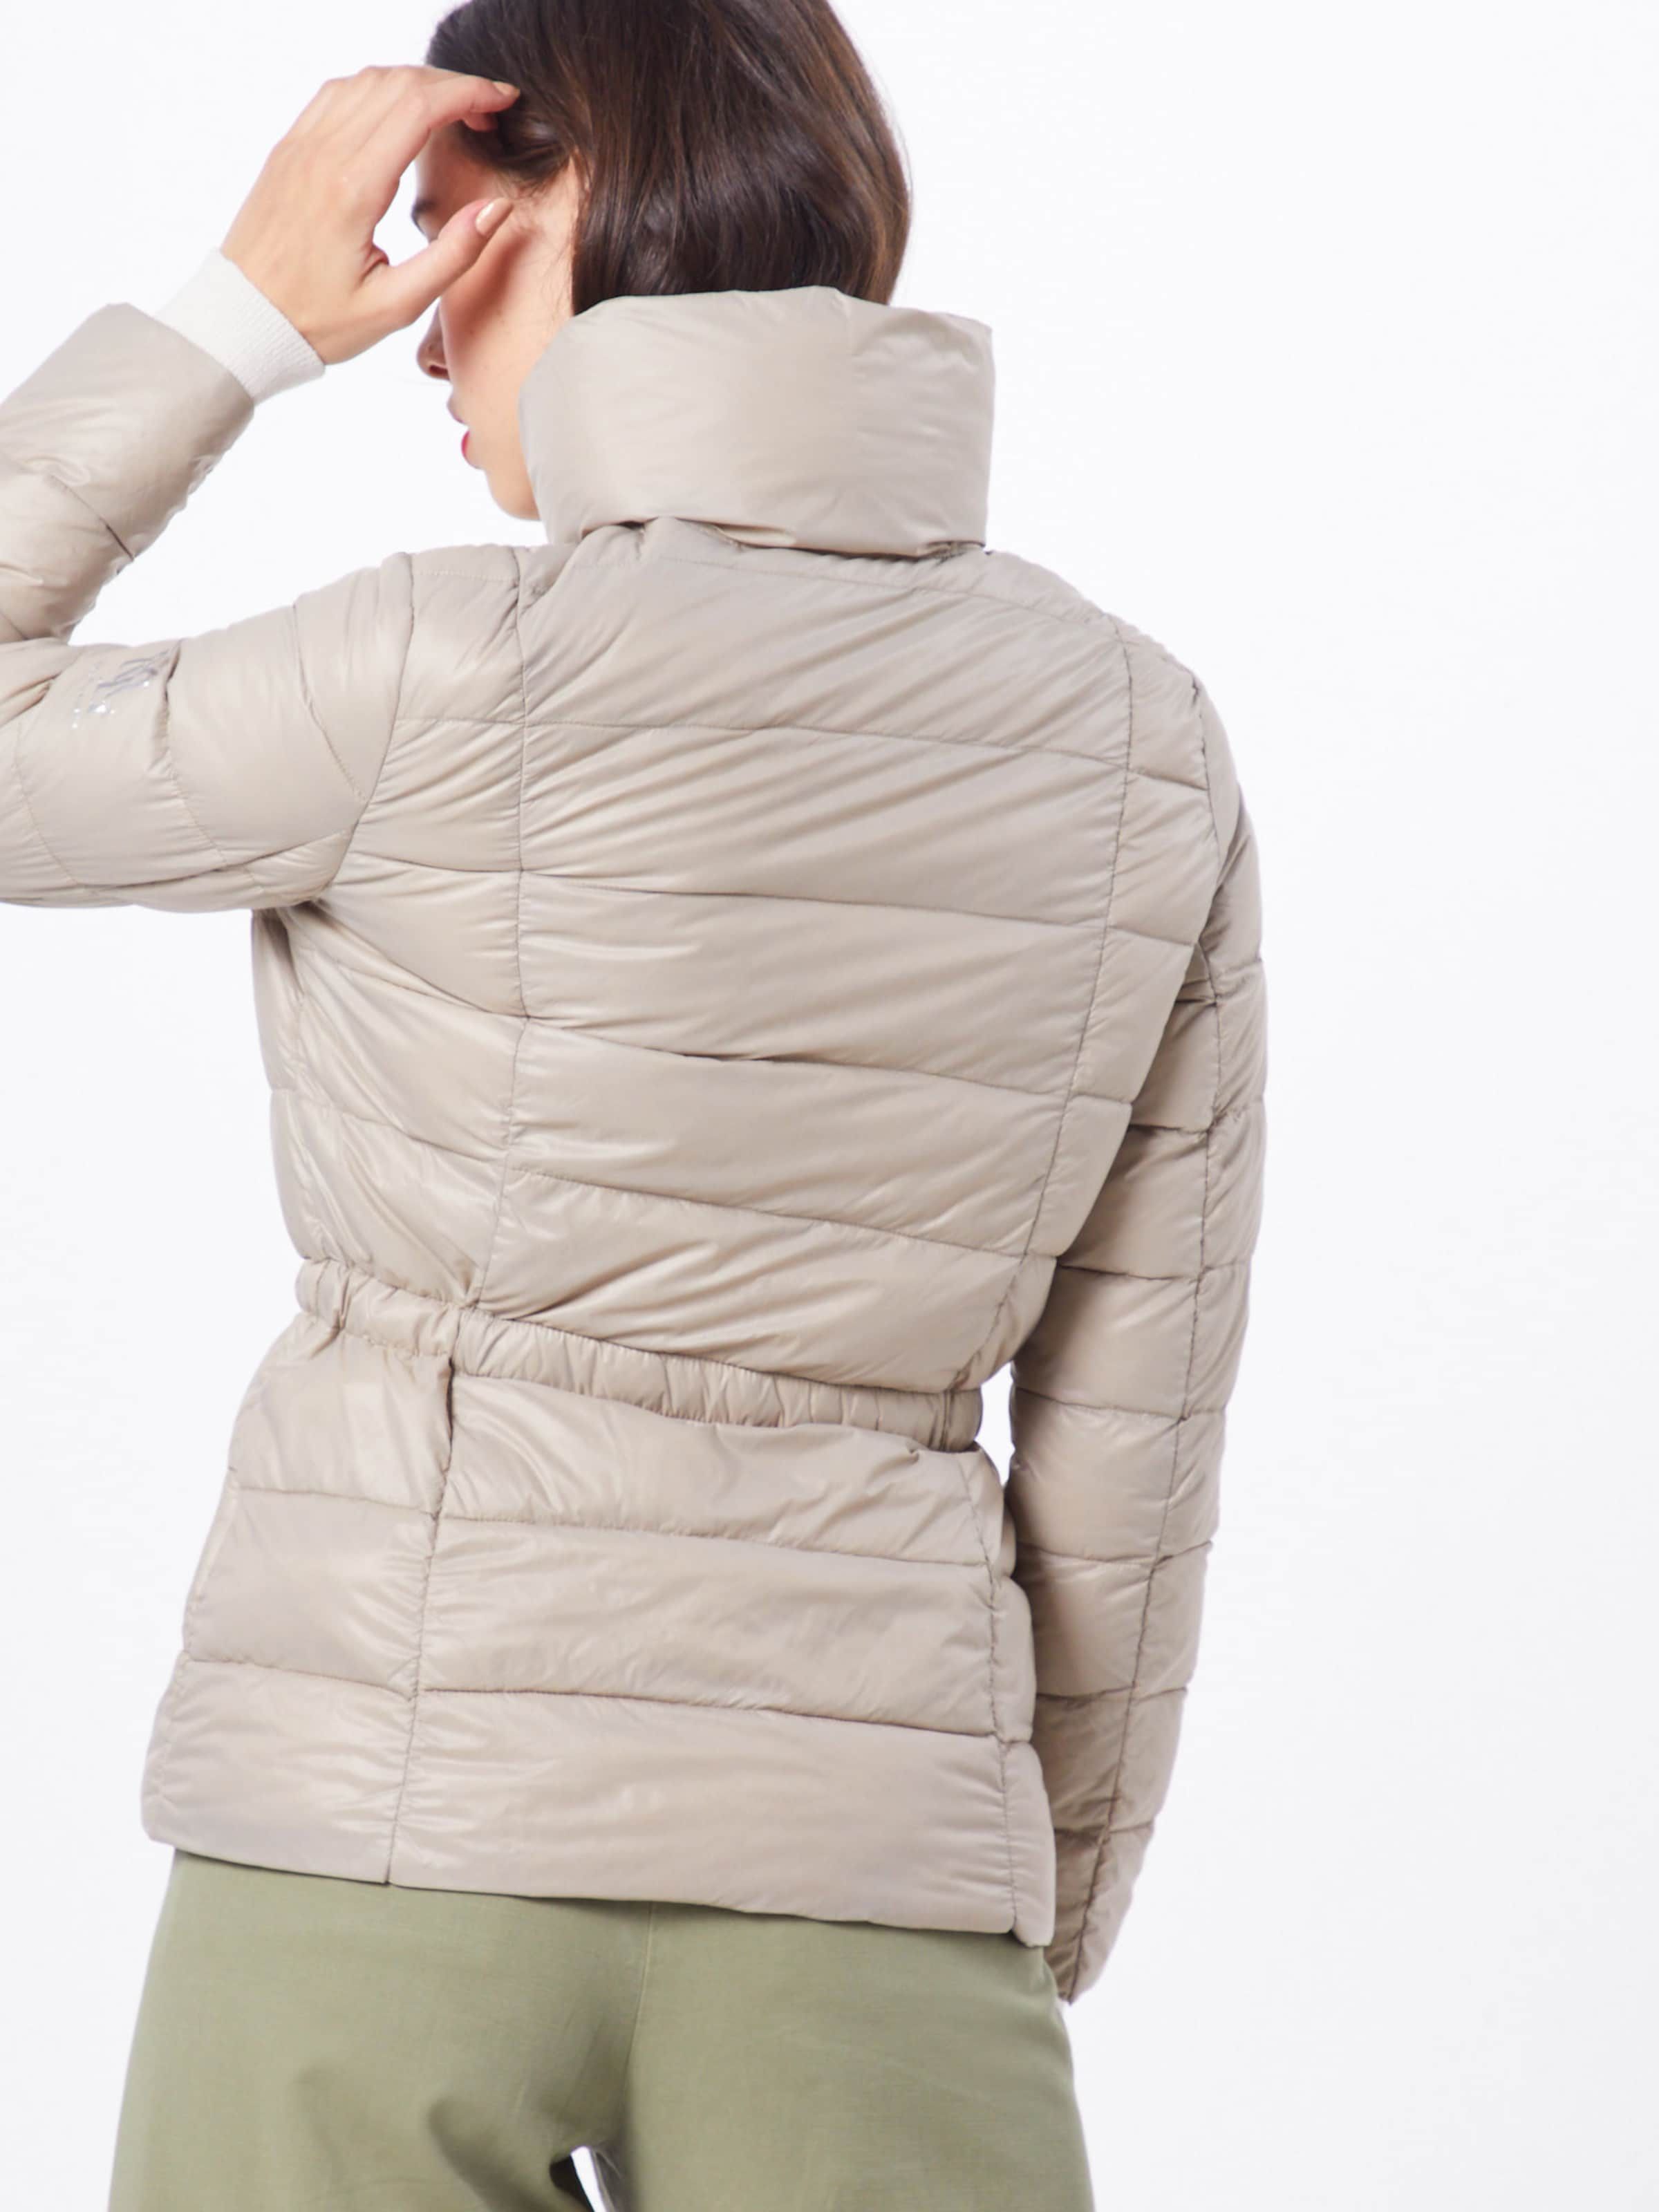 Lauren 'packable Creme Rb jacket' Ralph Daunenjacke In IY6yvbfmg7